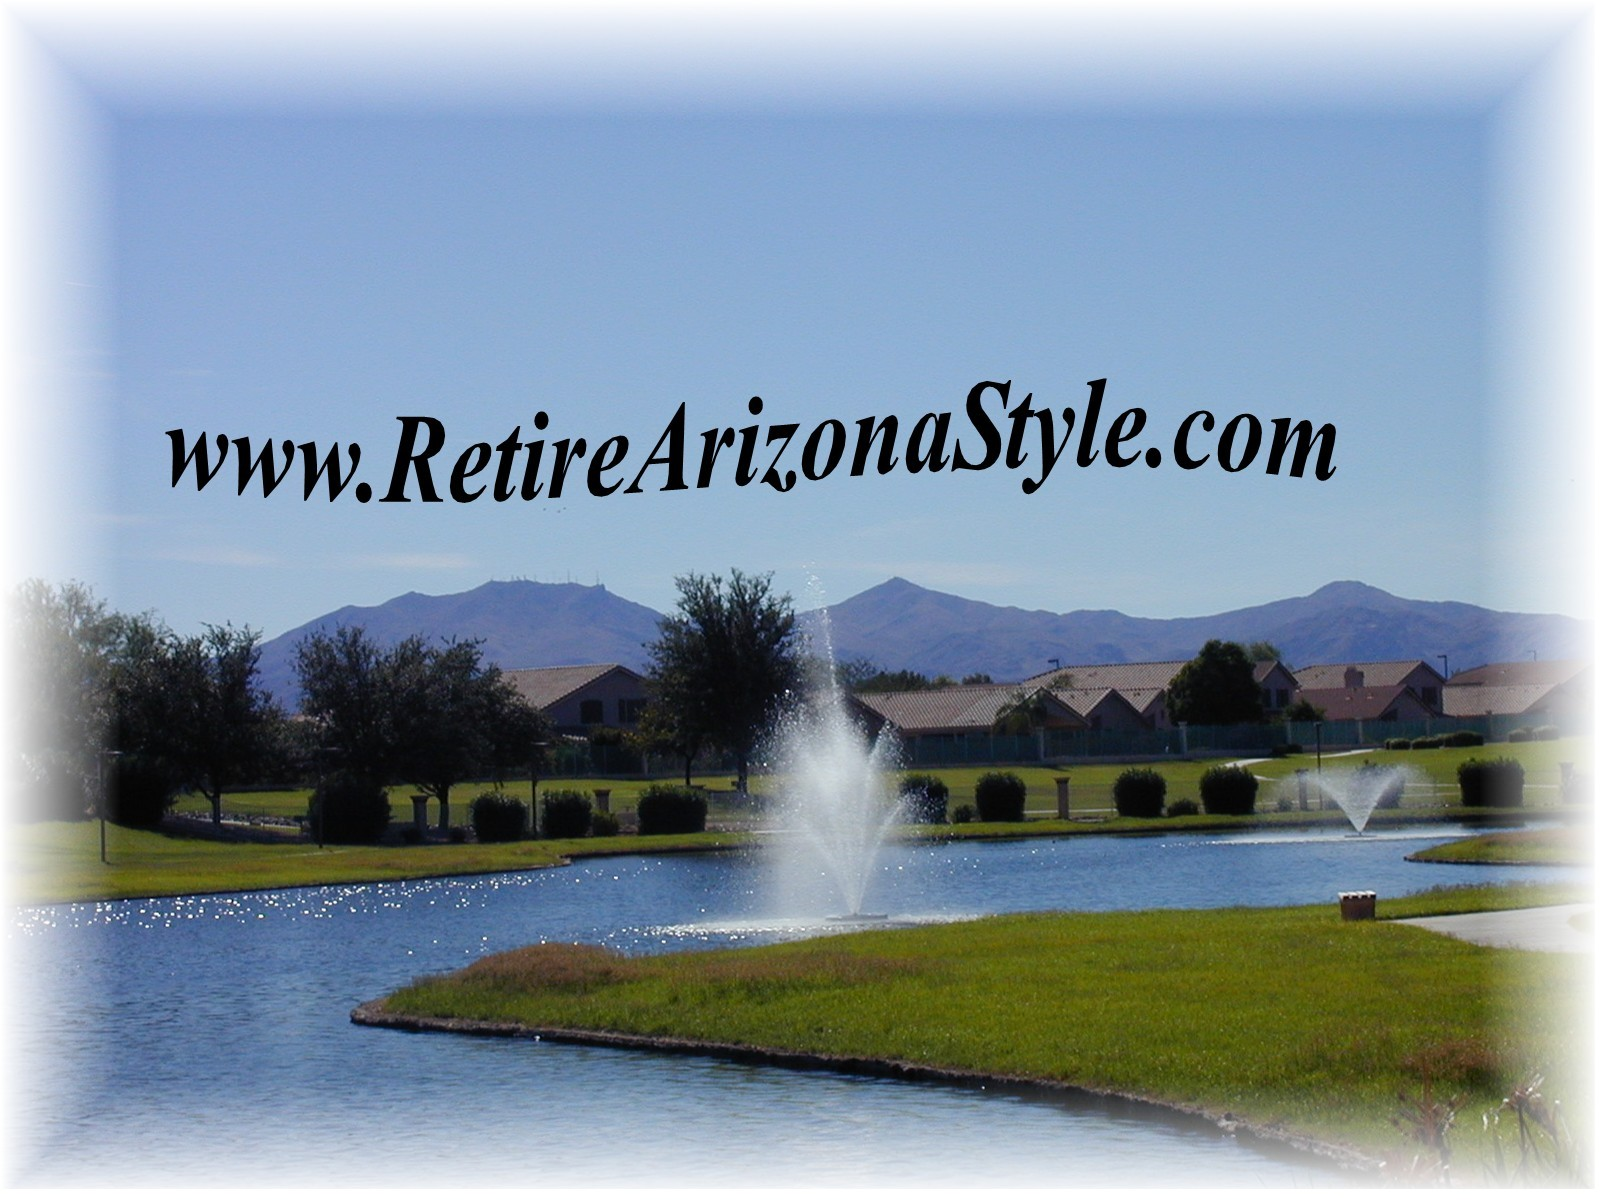 Adult communities in Surprise Arizona have stunning views of the White Tank Mountains